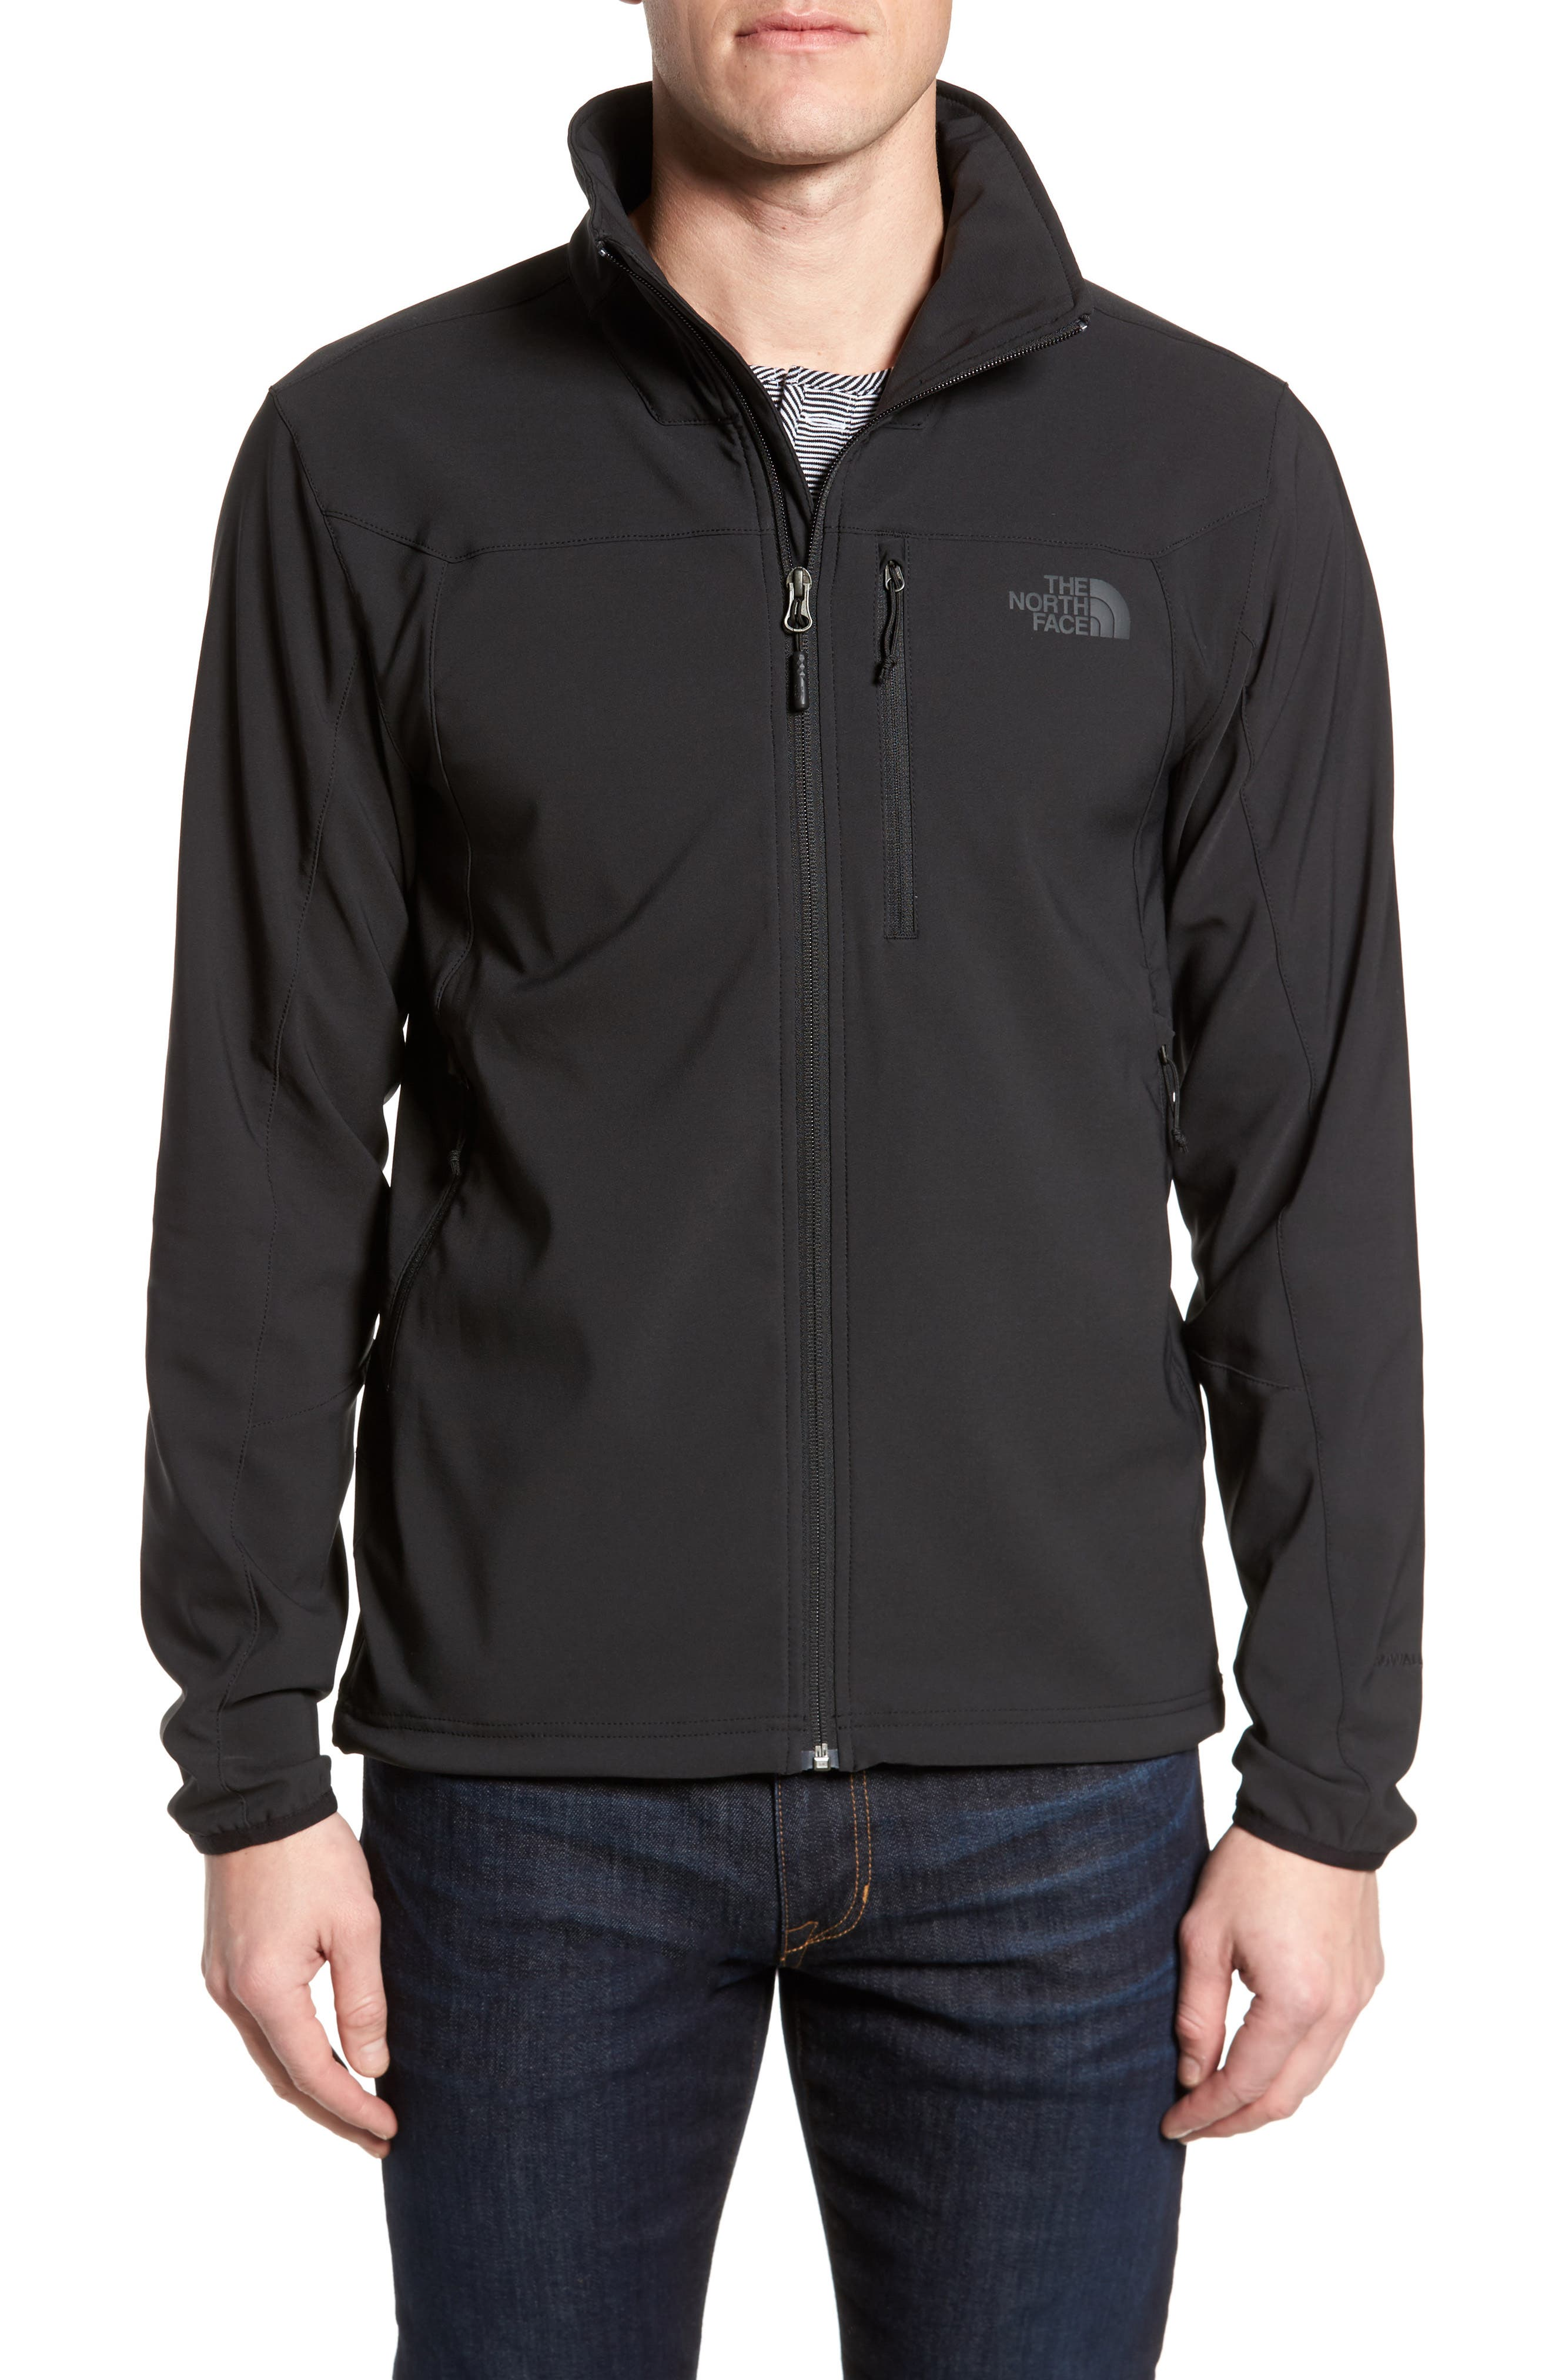 Apex Nimble Jacket,                         Main,                         color, BLACK/ BLACK